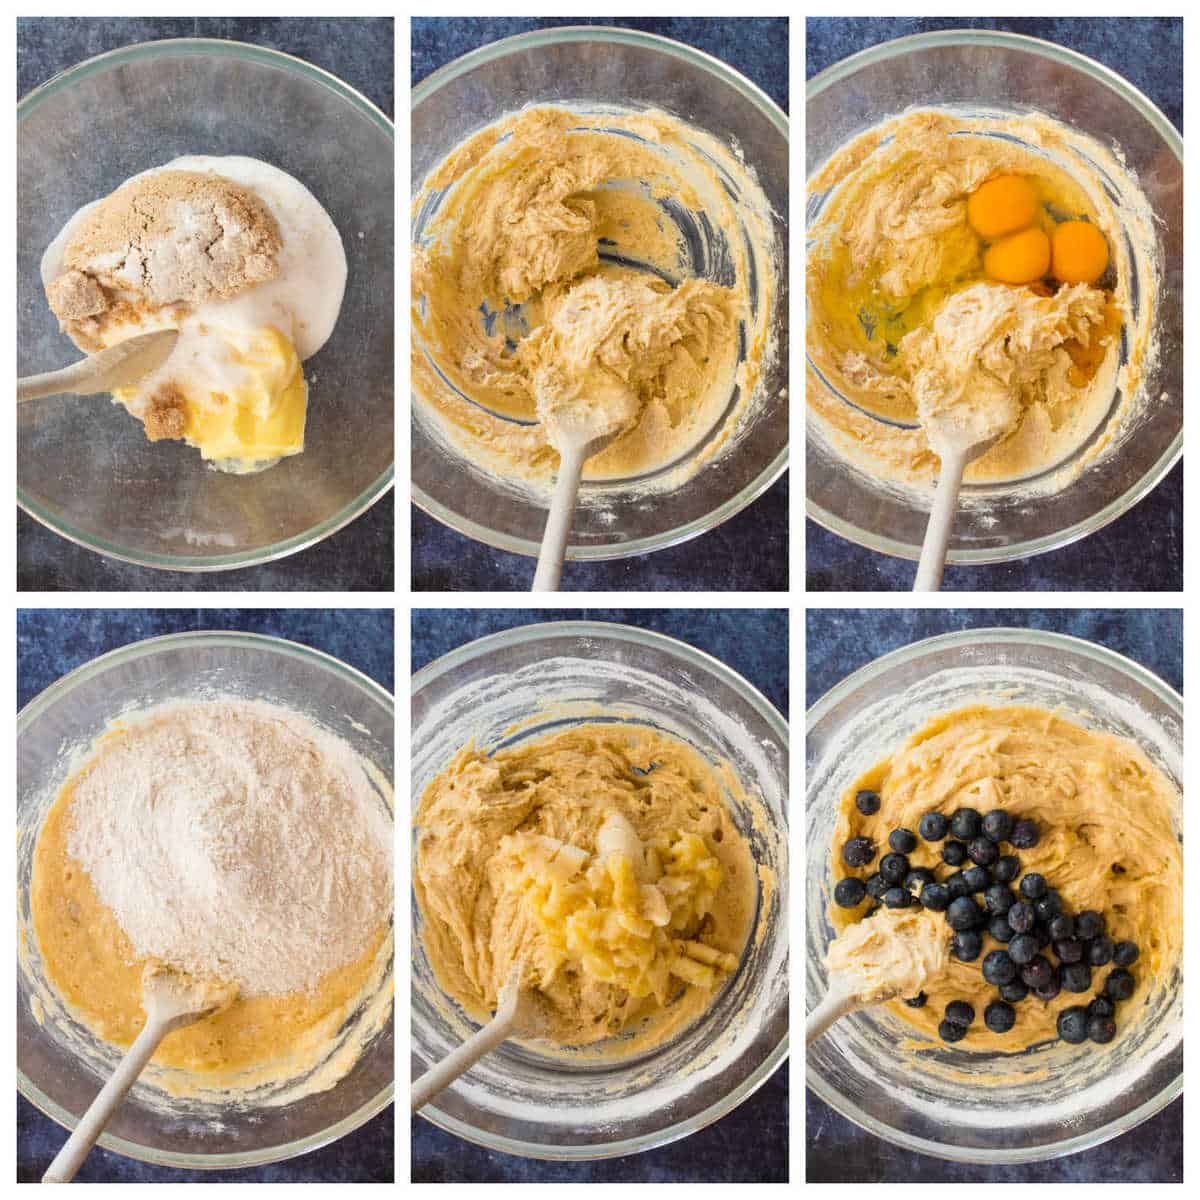 Step by step photo instructions for making the blueberry banana loaf cake.